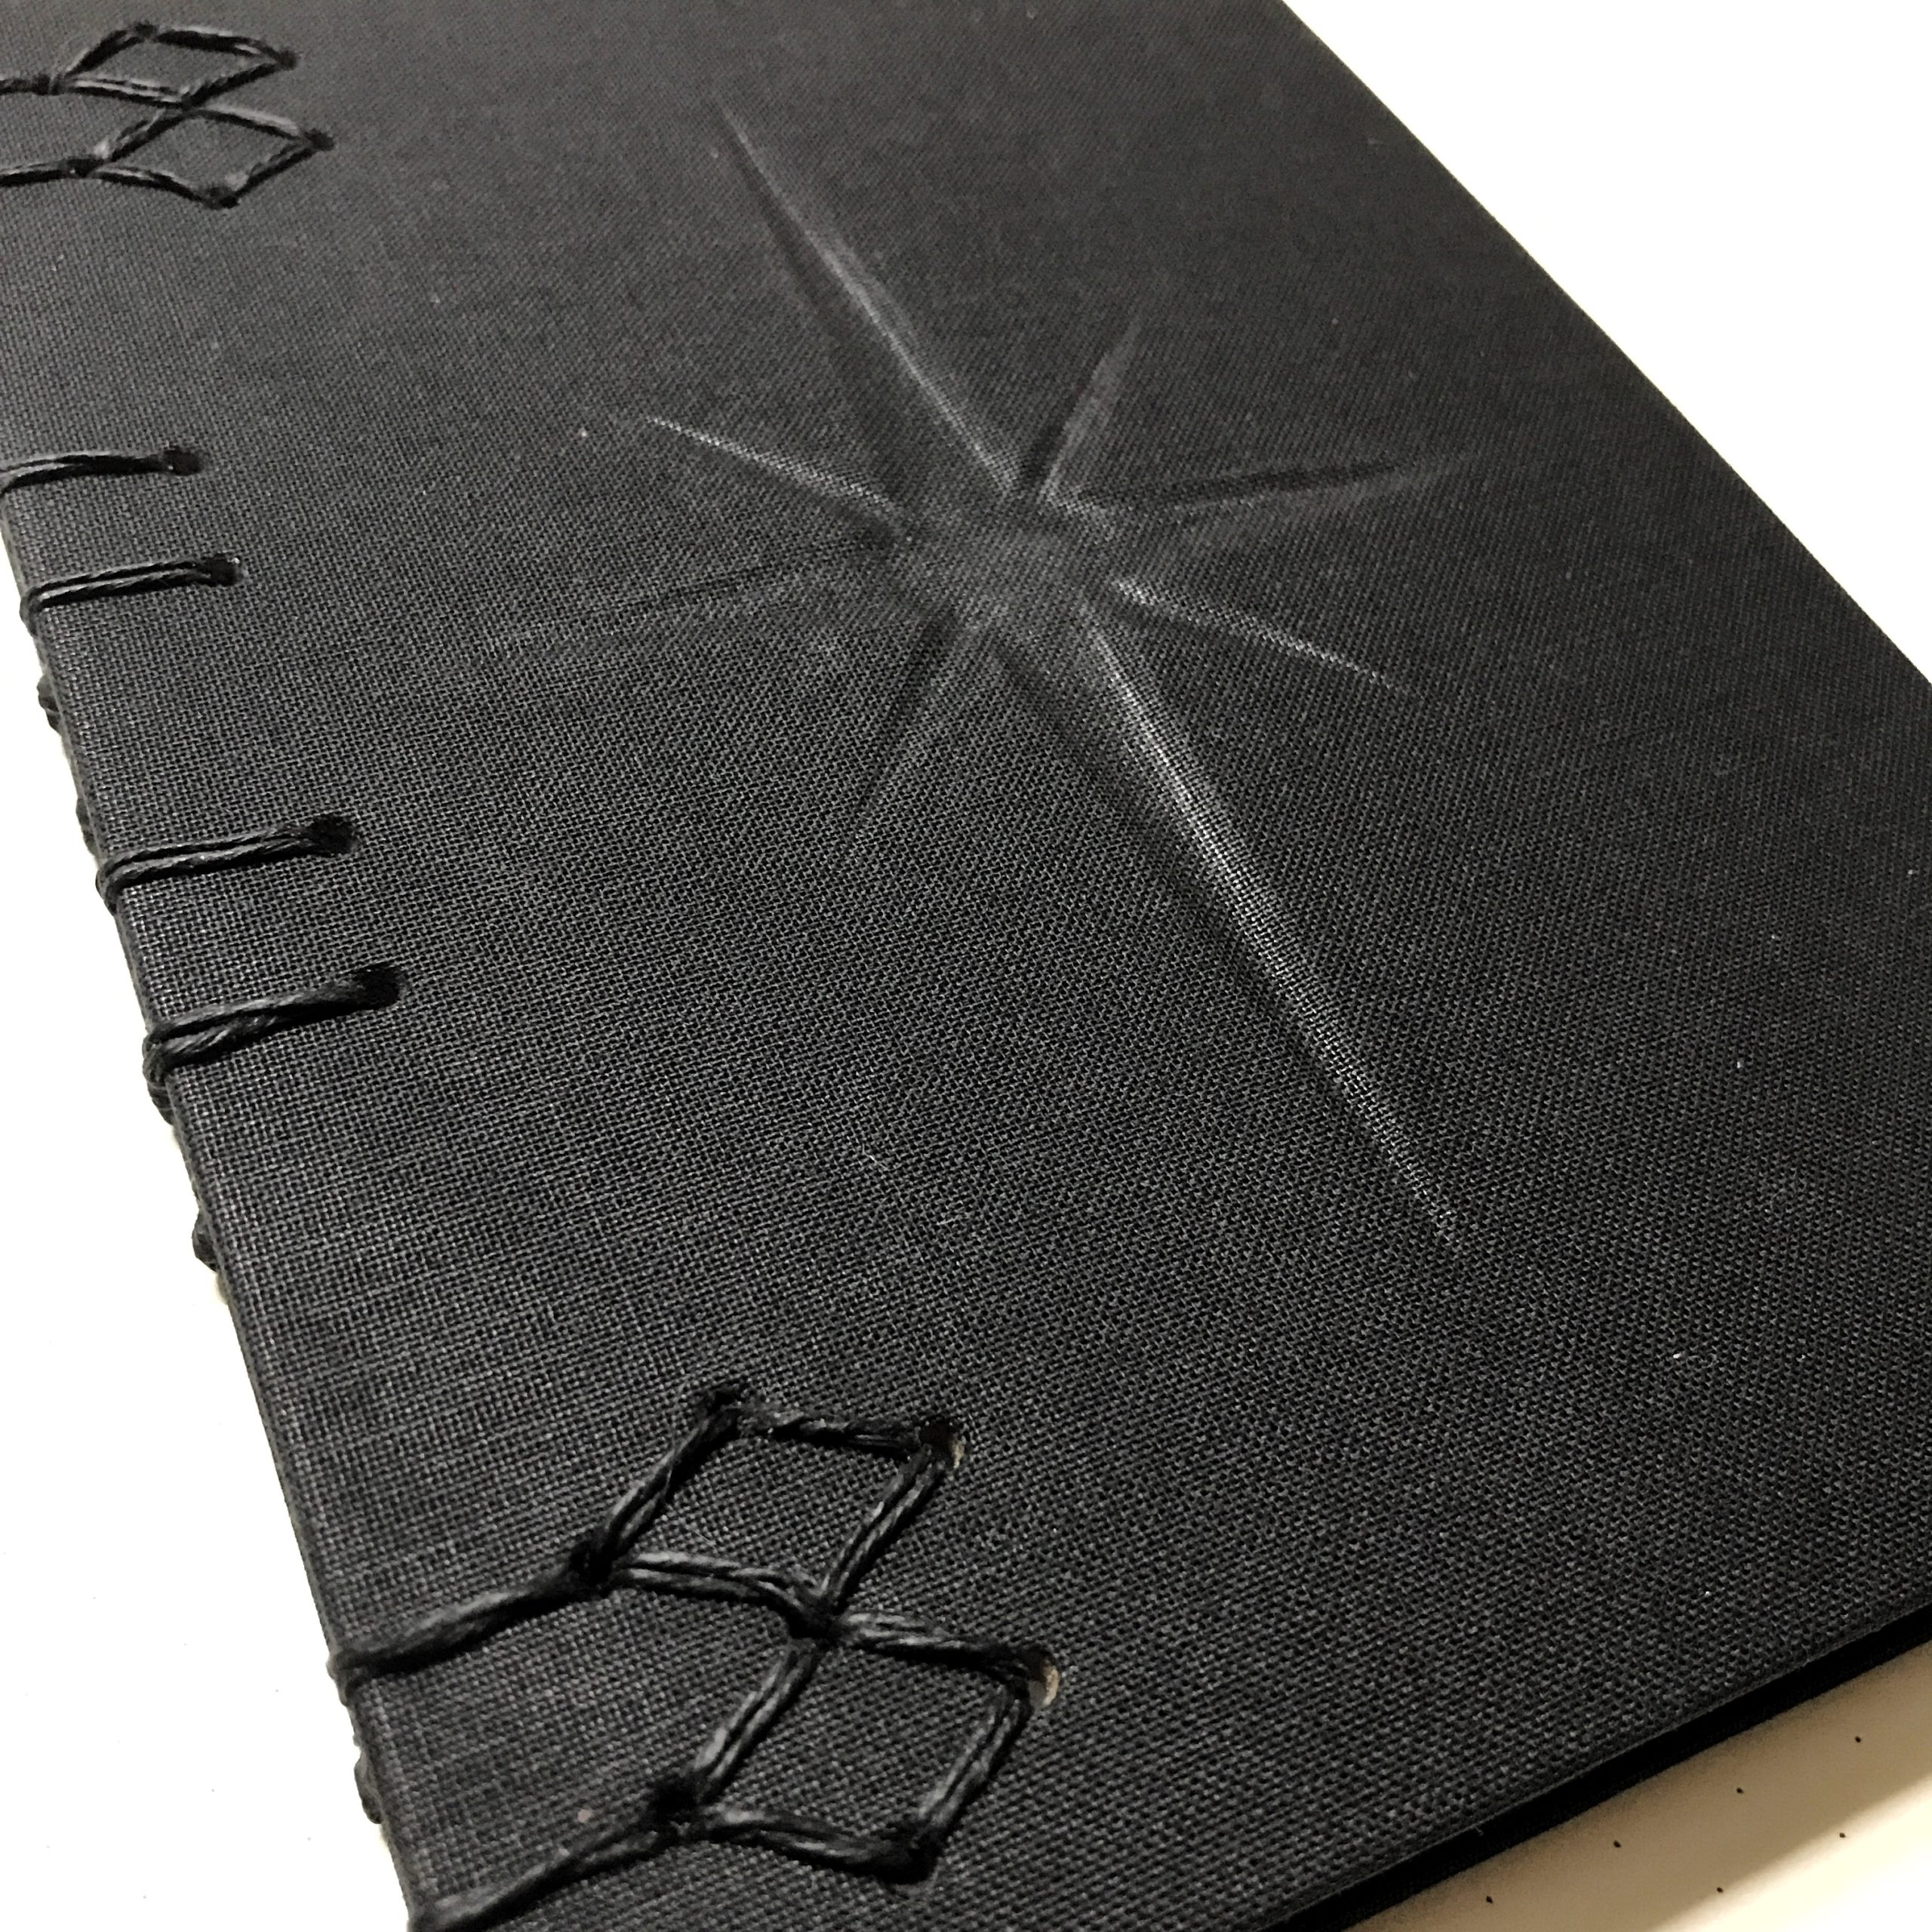 Closeup of journal with black cover and embossed compass design